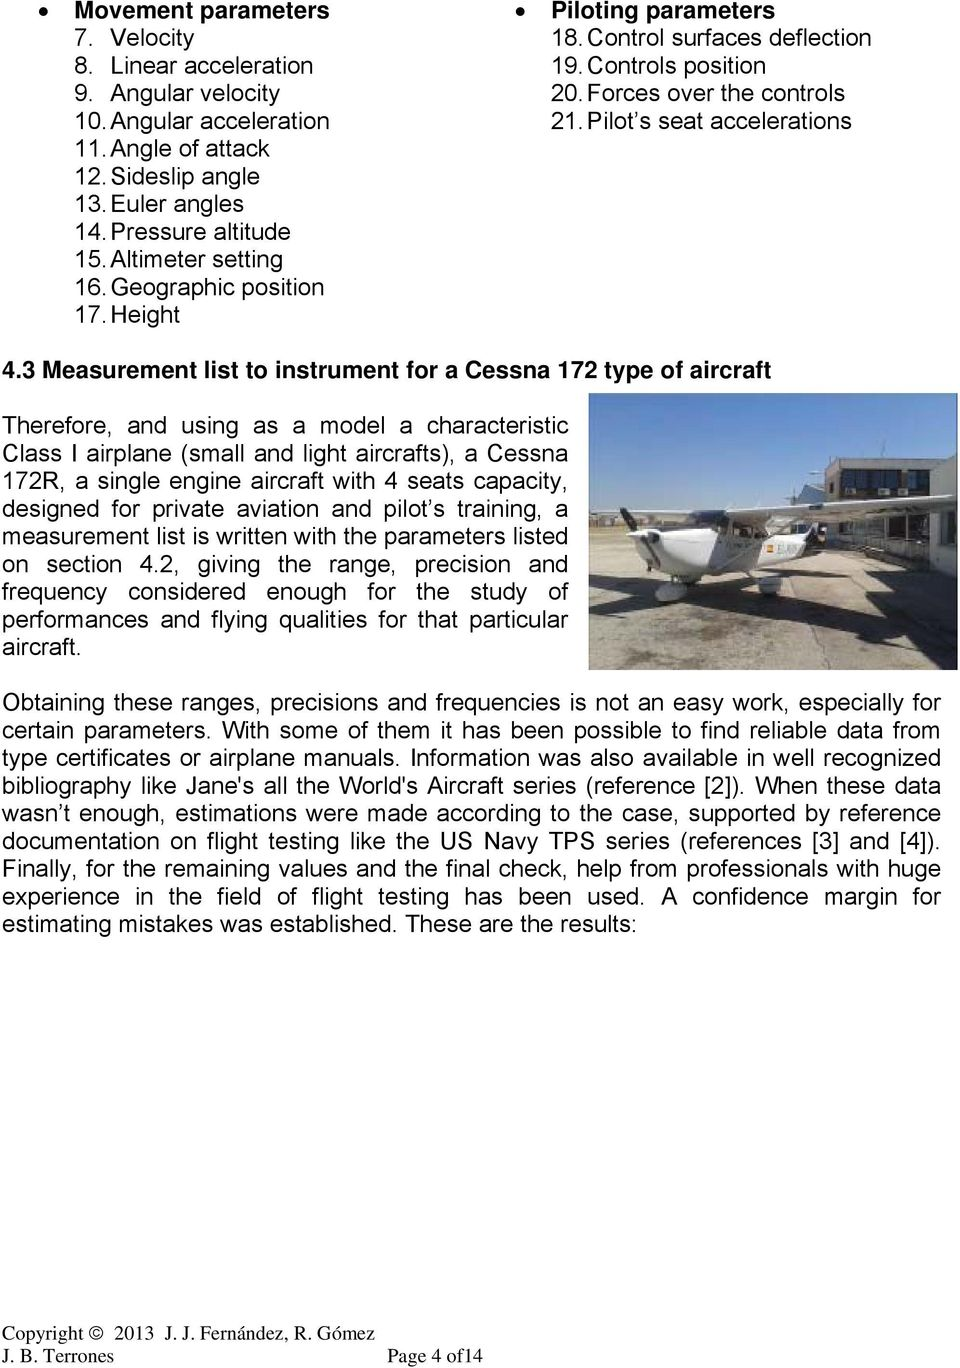 3 Measurement list to instrument for a Cessna 172 type of aircraft Therefore, and using as a model a characteristic Class I airplane (small and light aircrafts), a Cessna 172R, a single engine